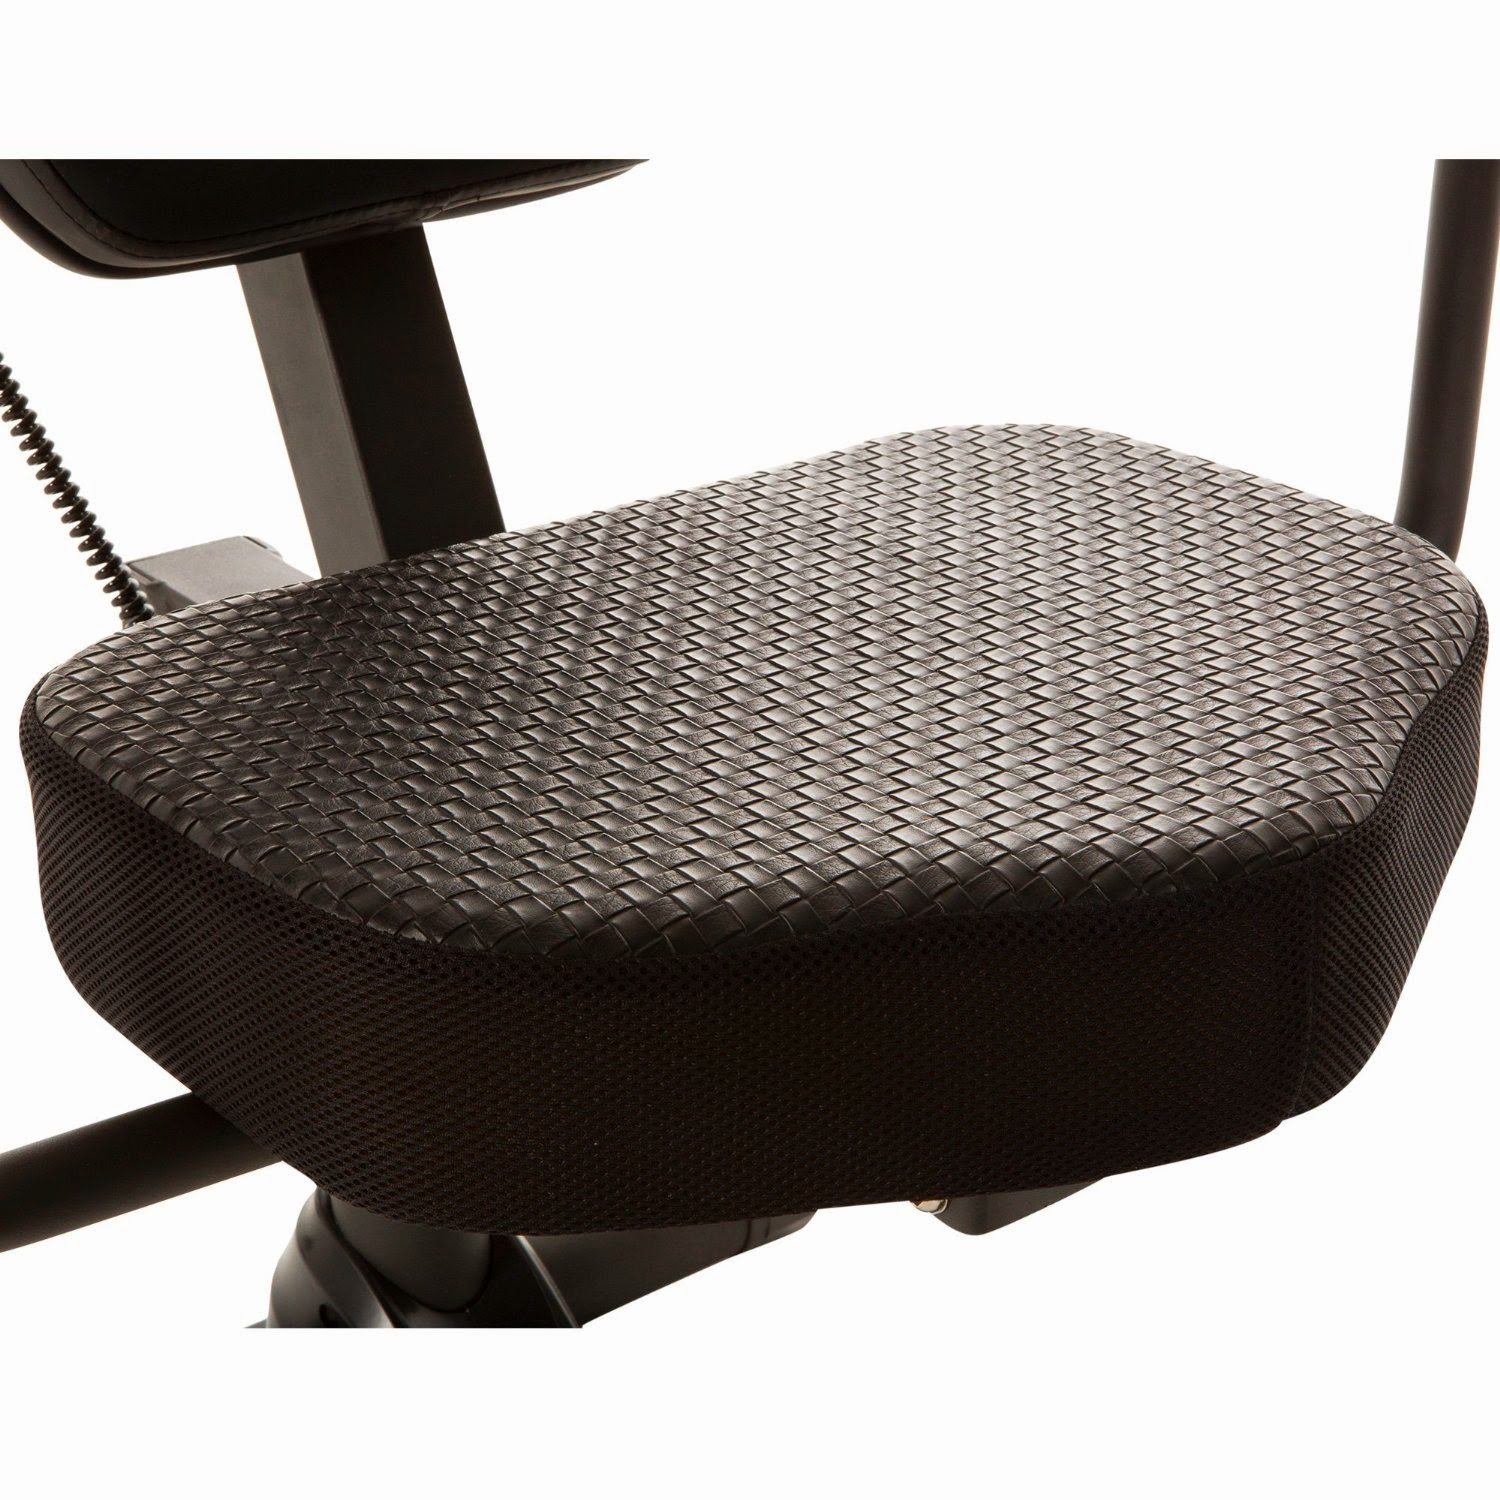 Bikes Seats For Big People Exerpeutic Air Soft Seat